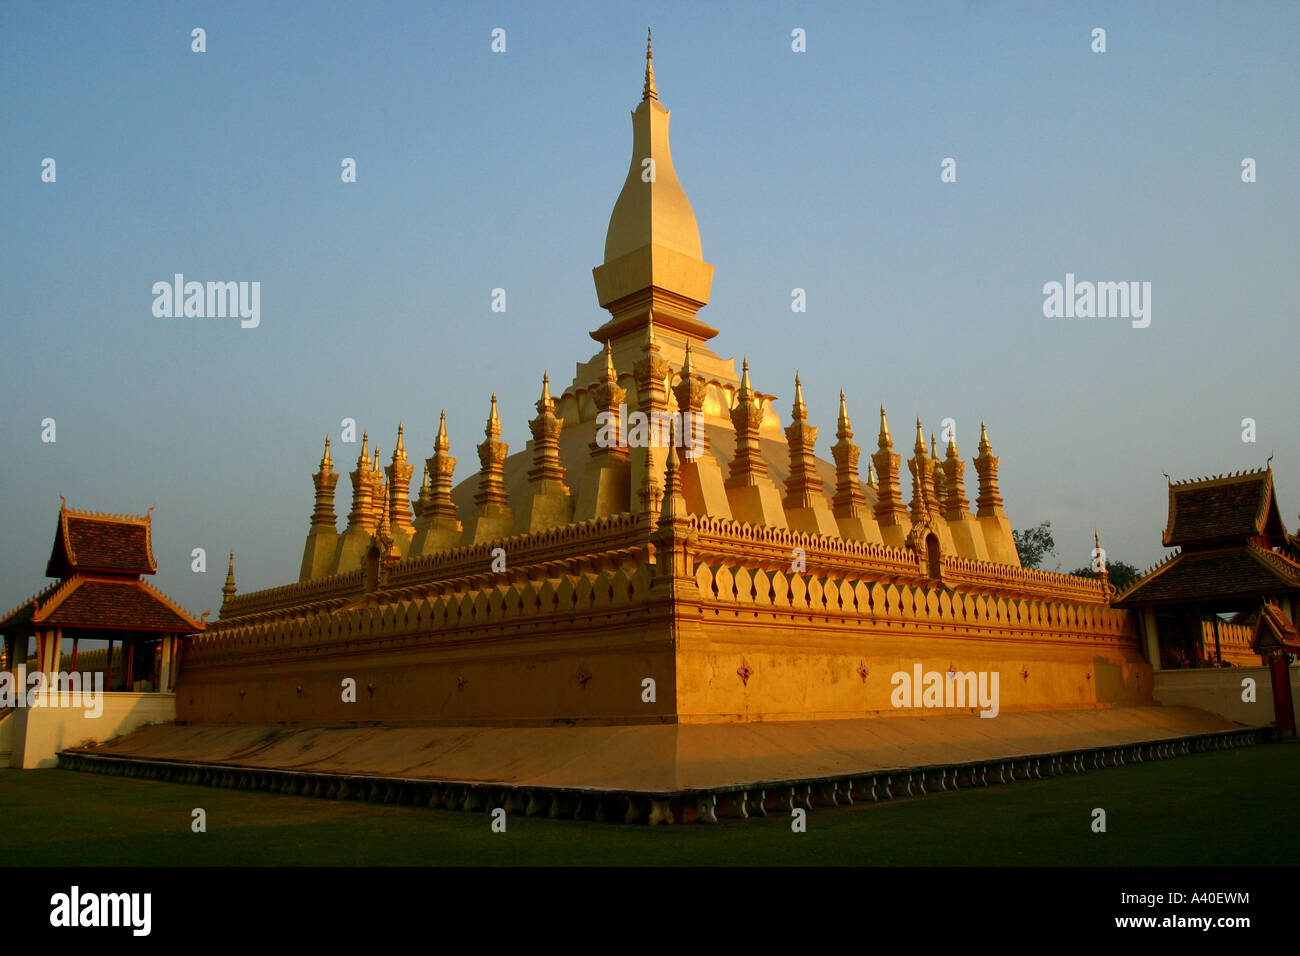 A Symbol For Laos And One Of The Most Important Religious Sites Of